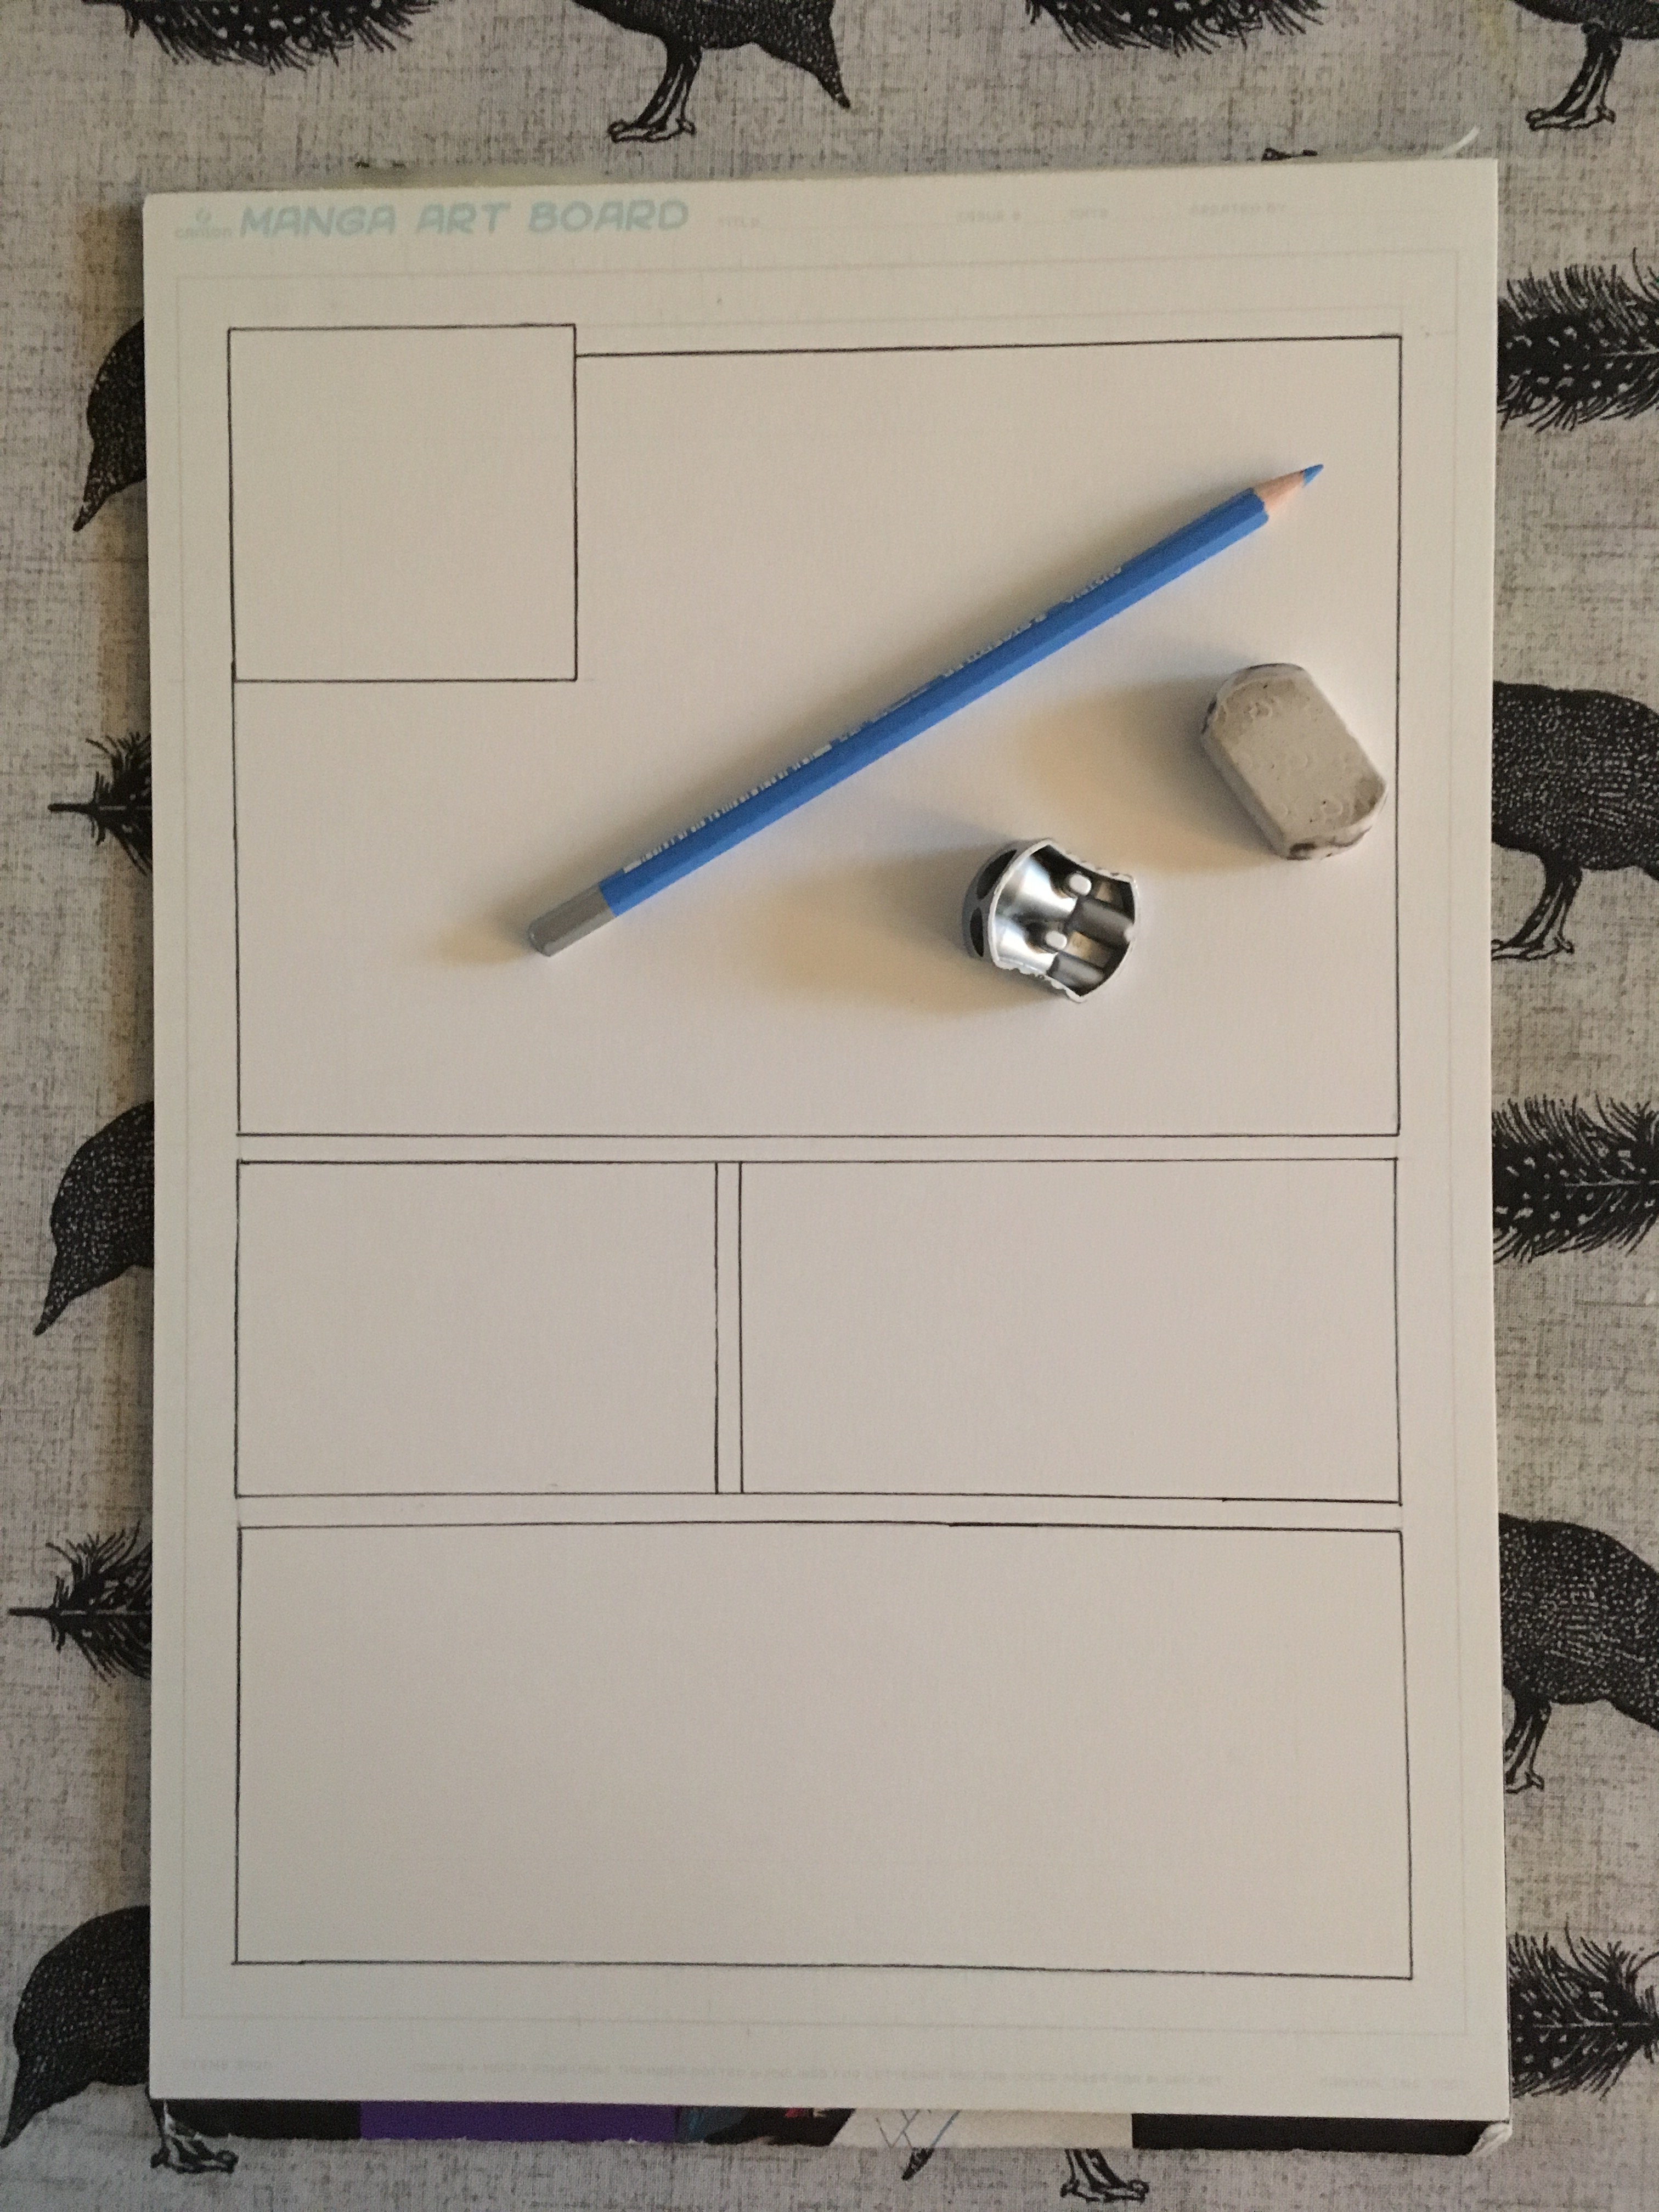 Outlining Panels for a Comics Page